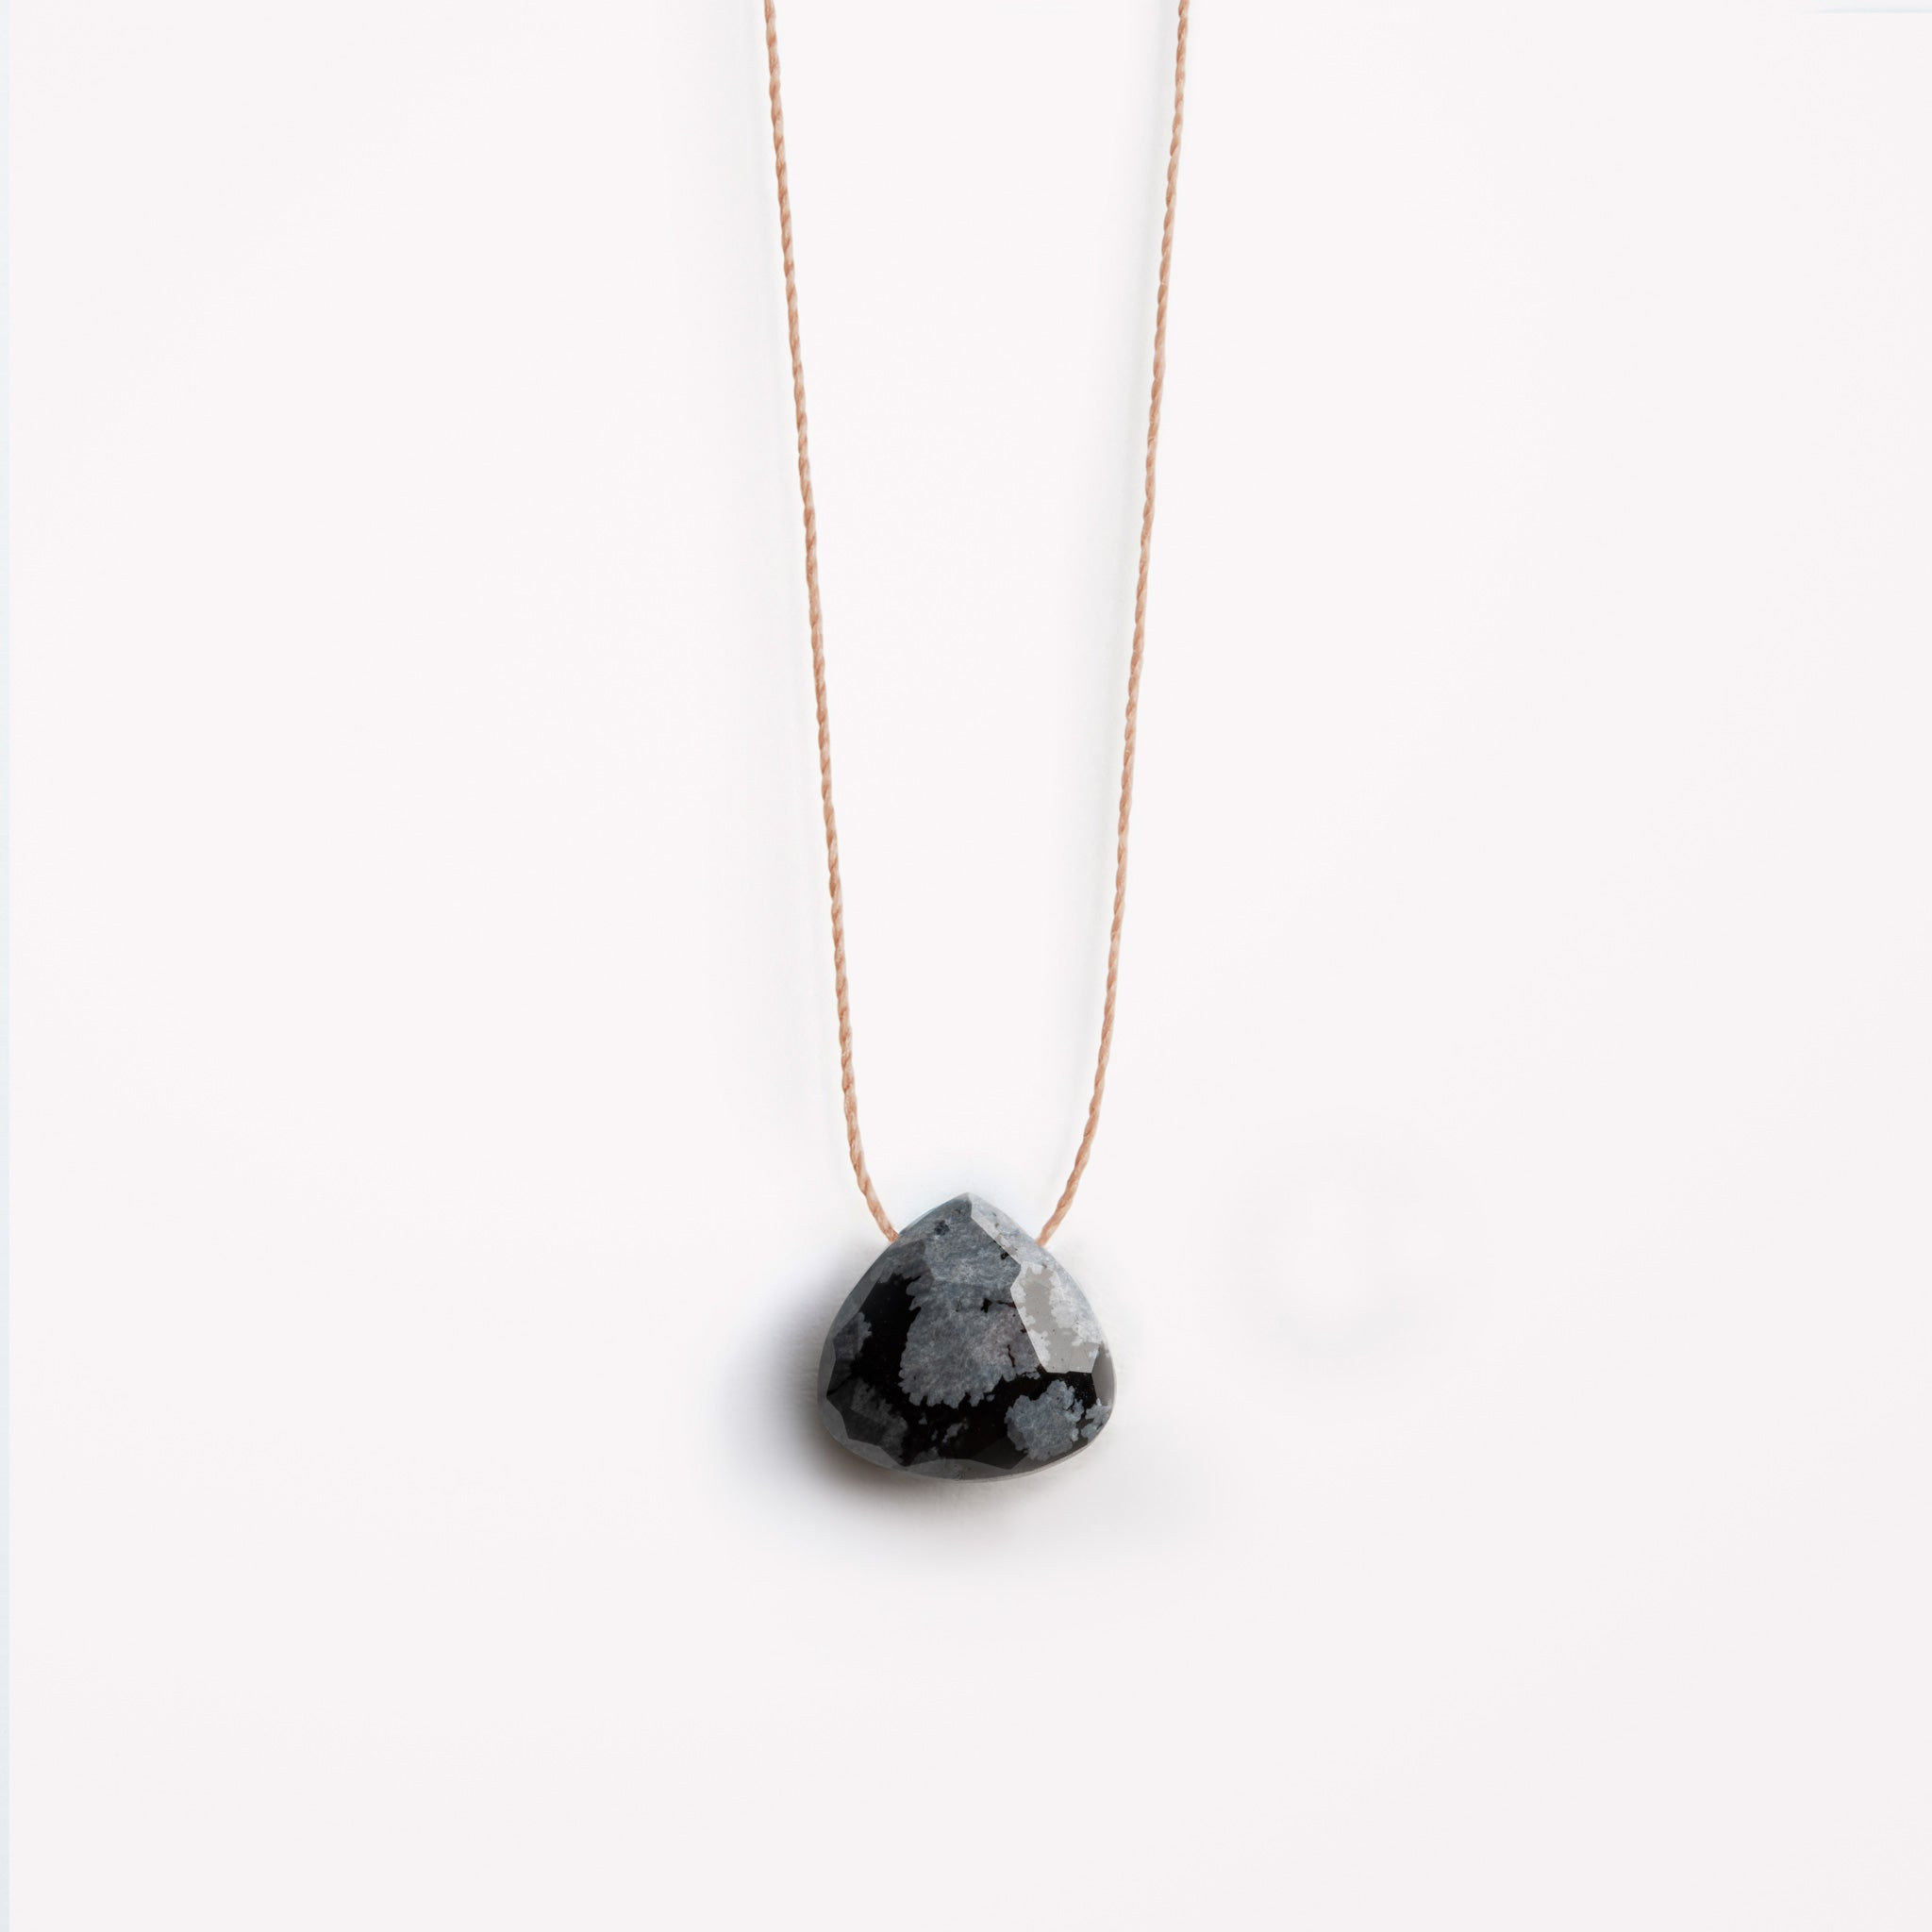 Wanderlust Life fine cord necklace. Obsidian gemstone fine cord necklace available in 2 lengths. 17